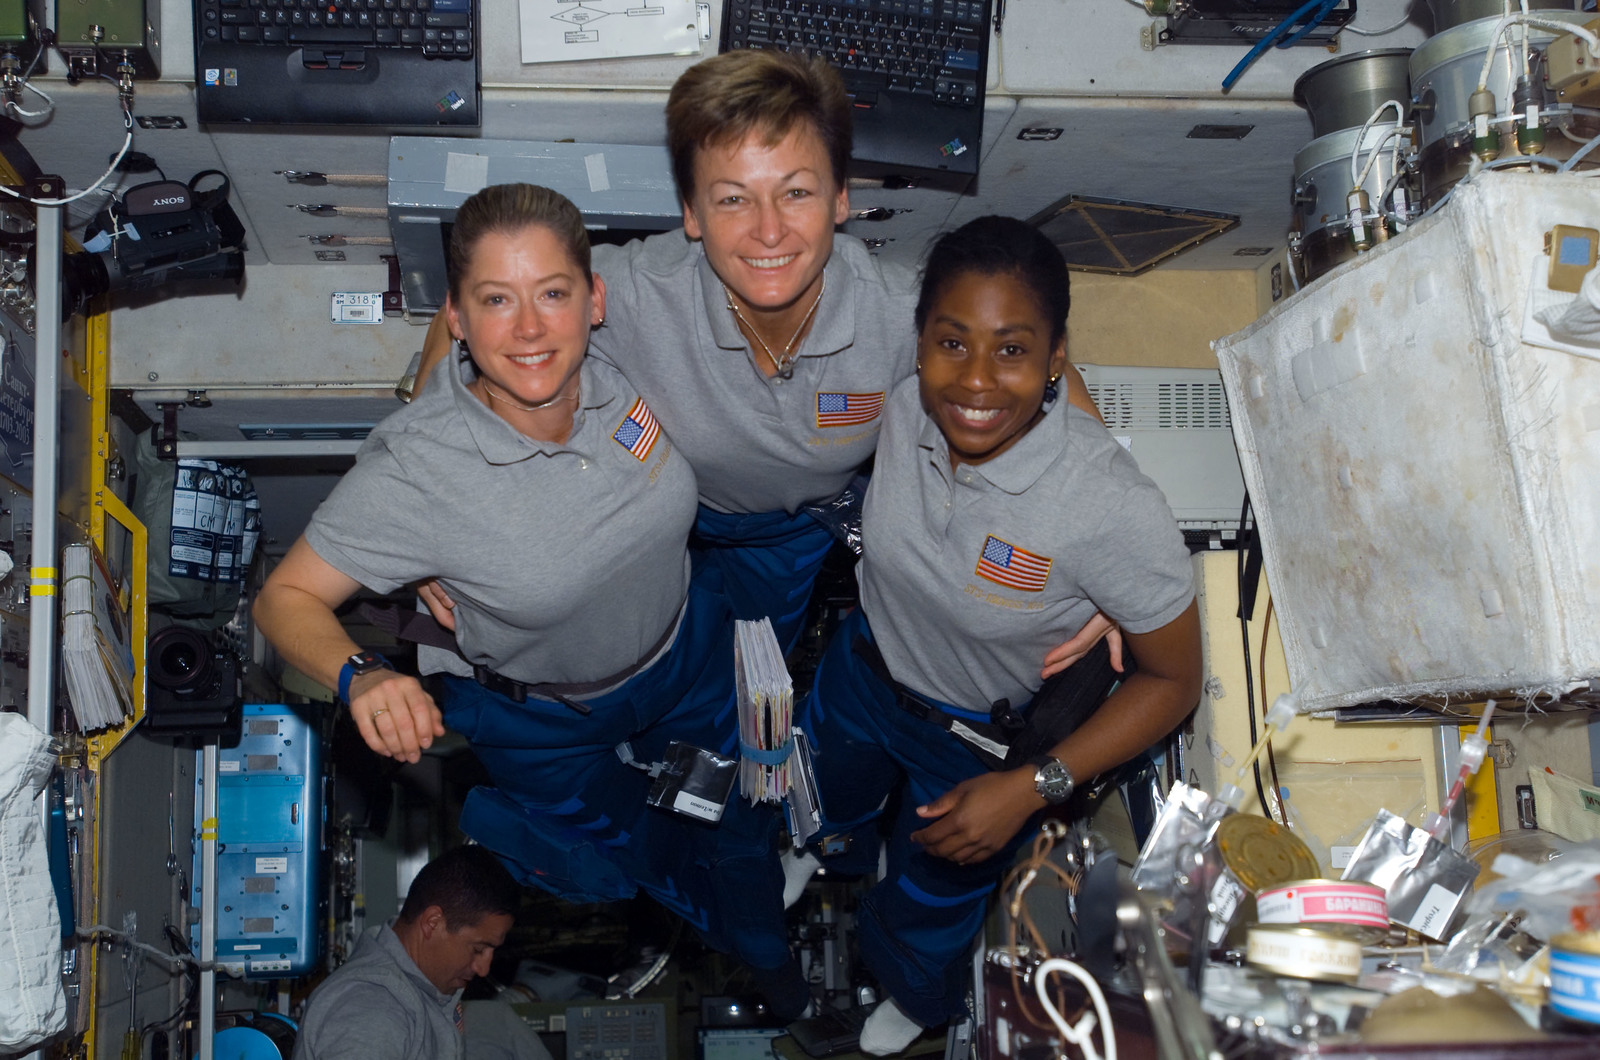 S120E008339 - STS-120 - STS-120 and Expedition 16 crew in Zvezda module